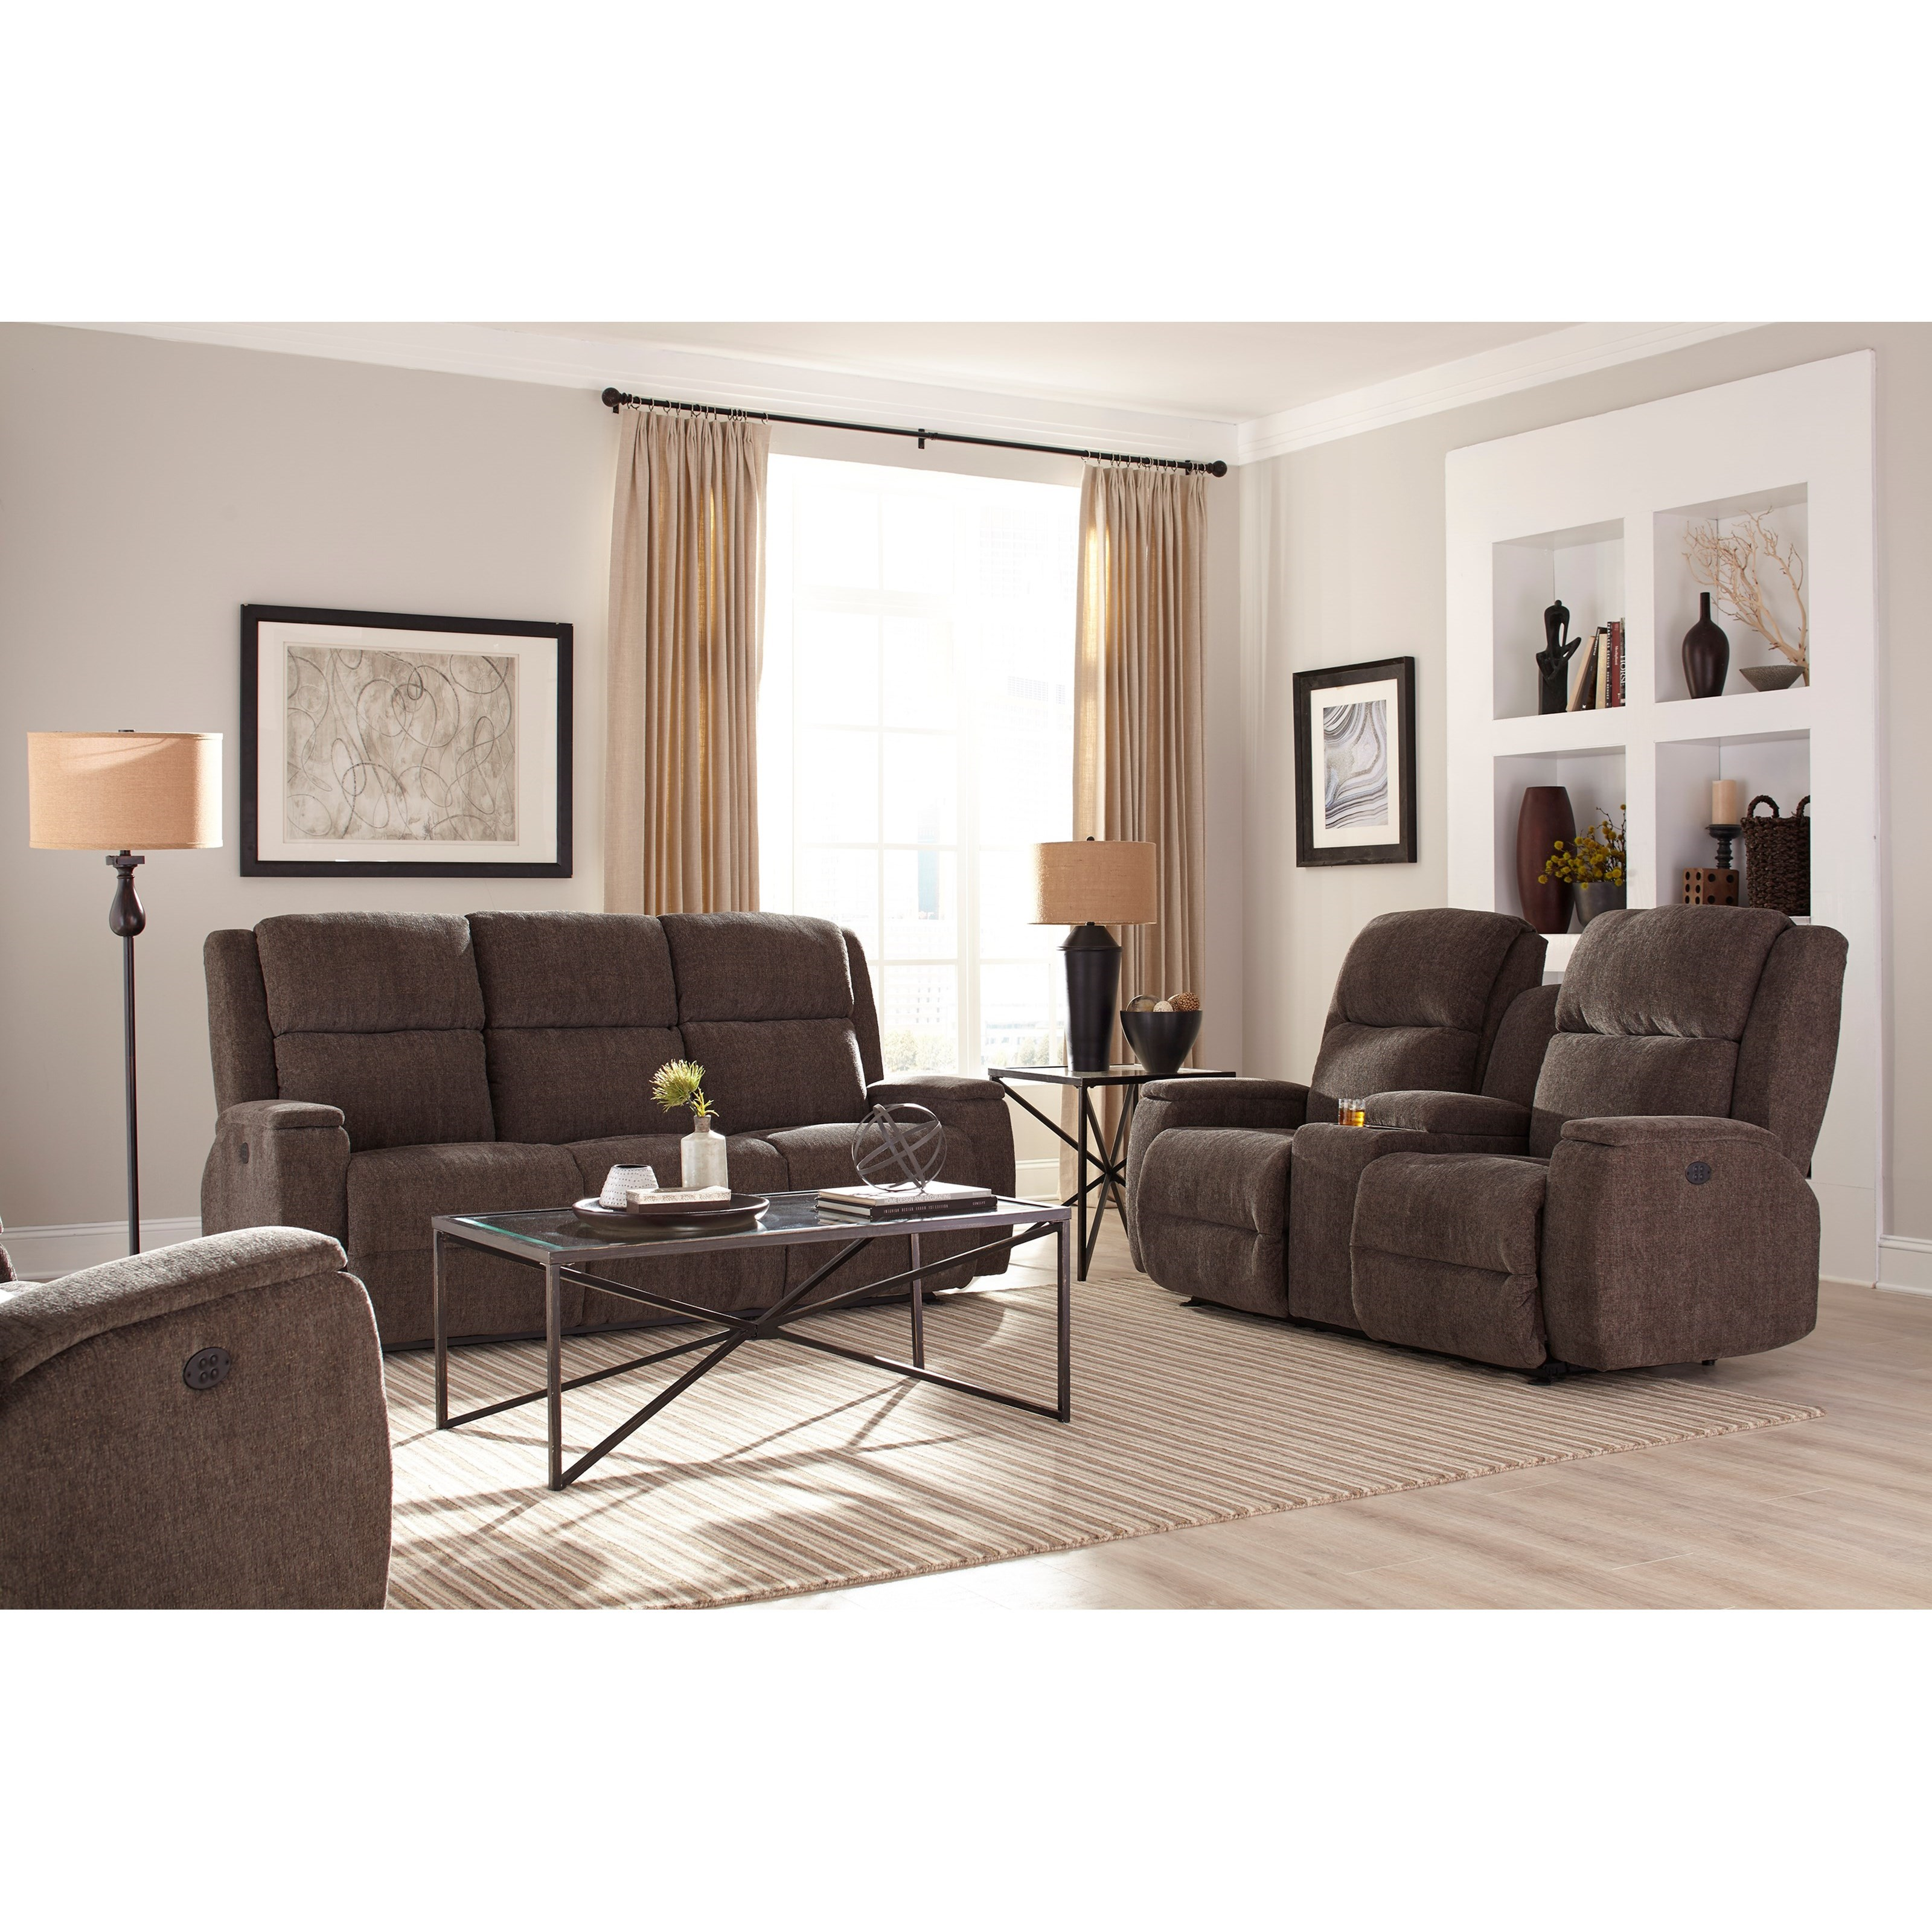 Best Home Furnishings Colton Reclining Living Room Group - Item Number: 740 Living Room Group 2